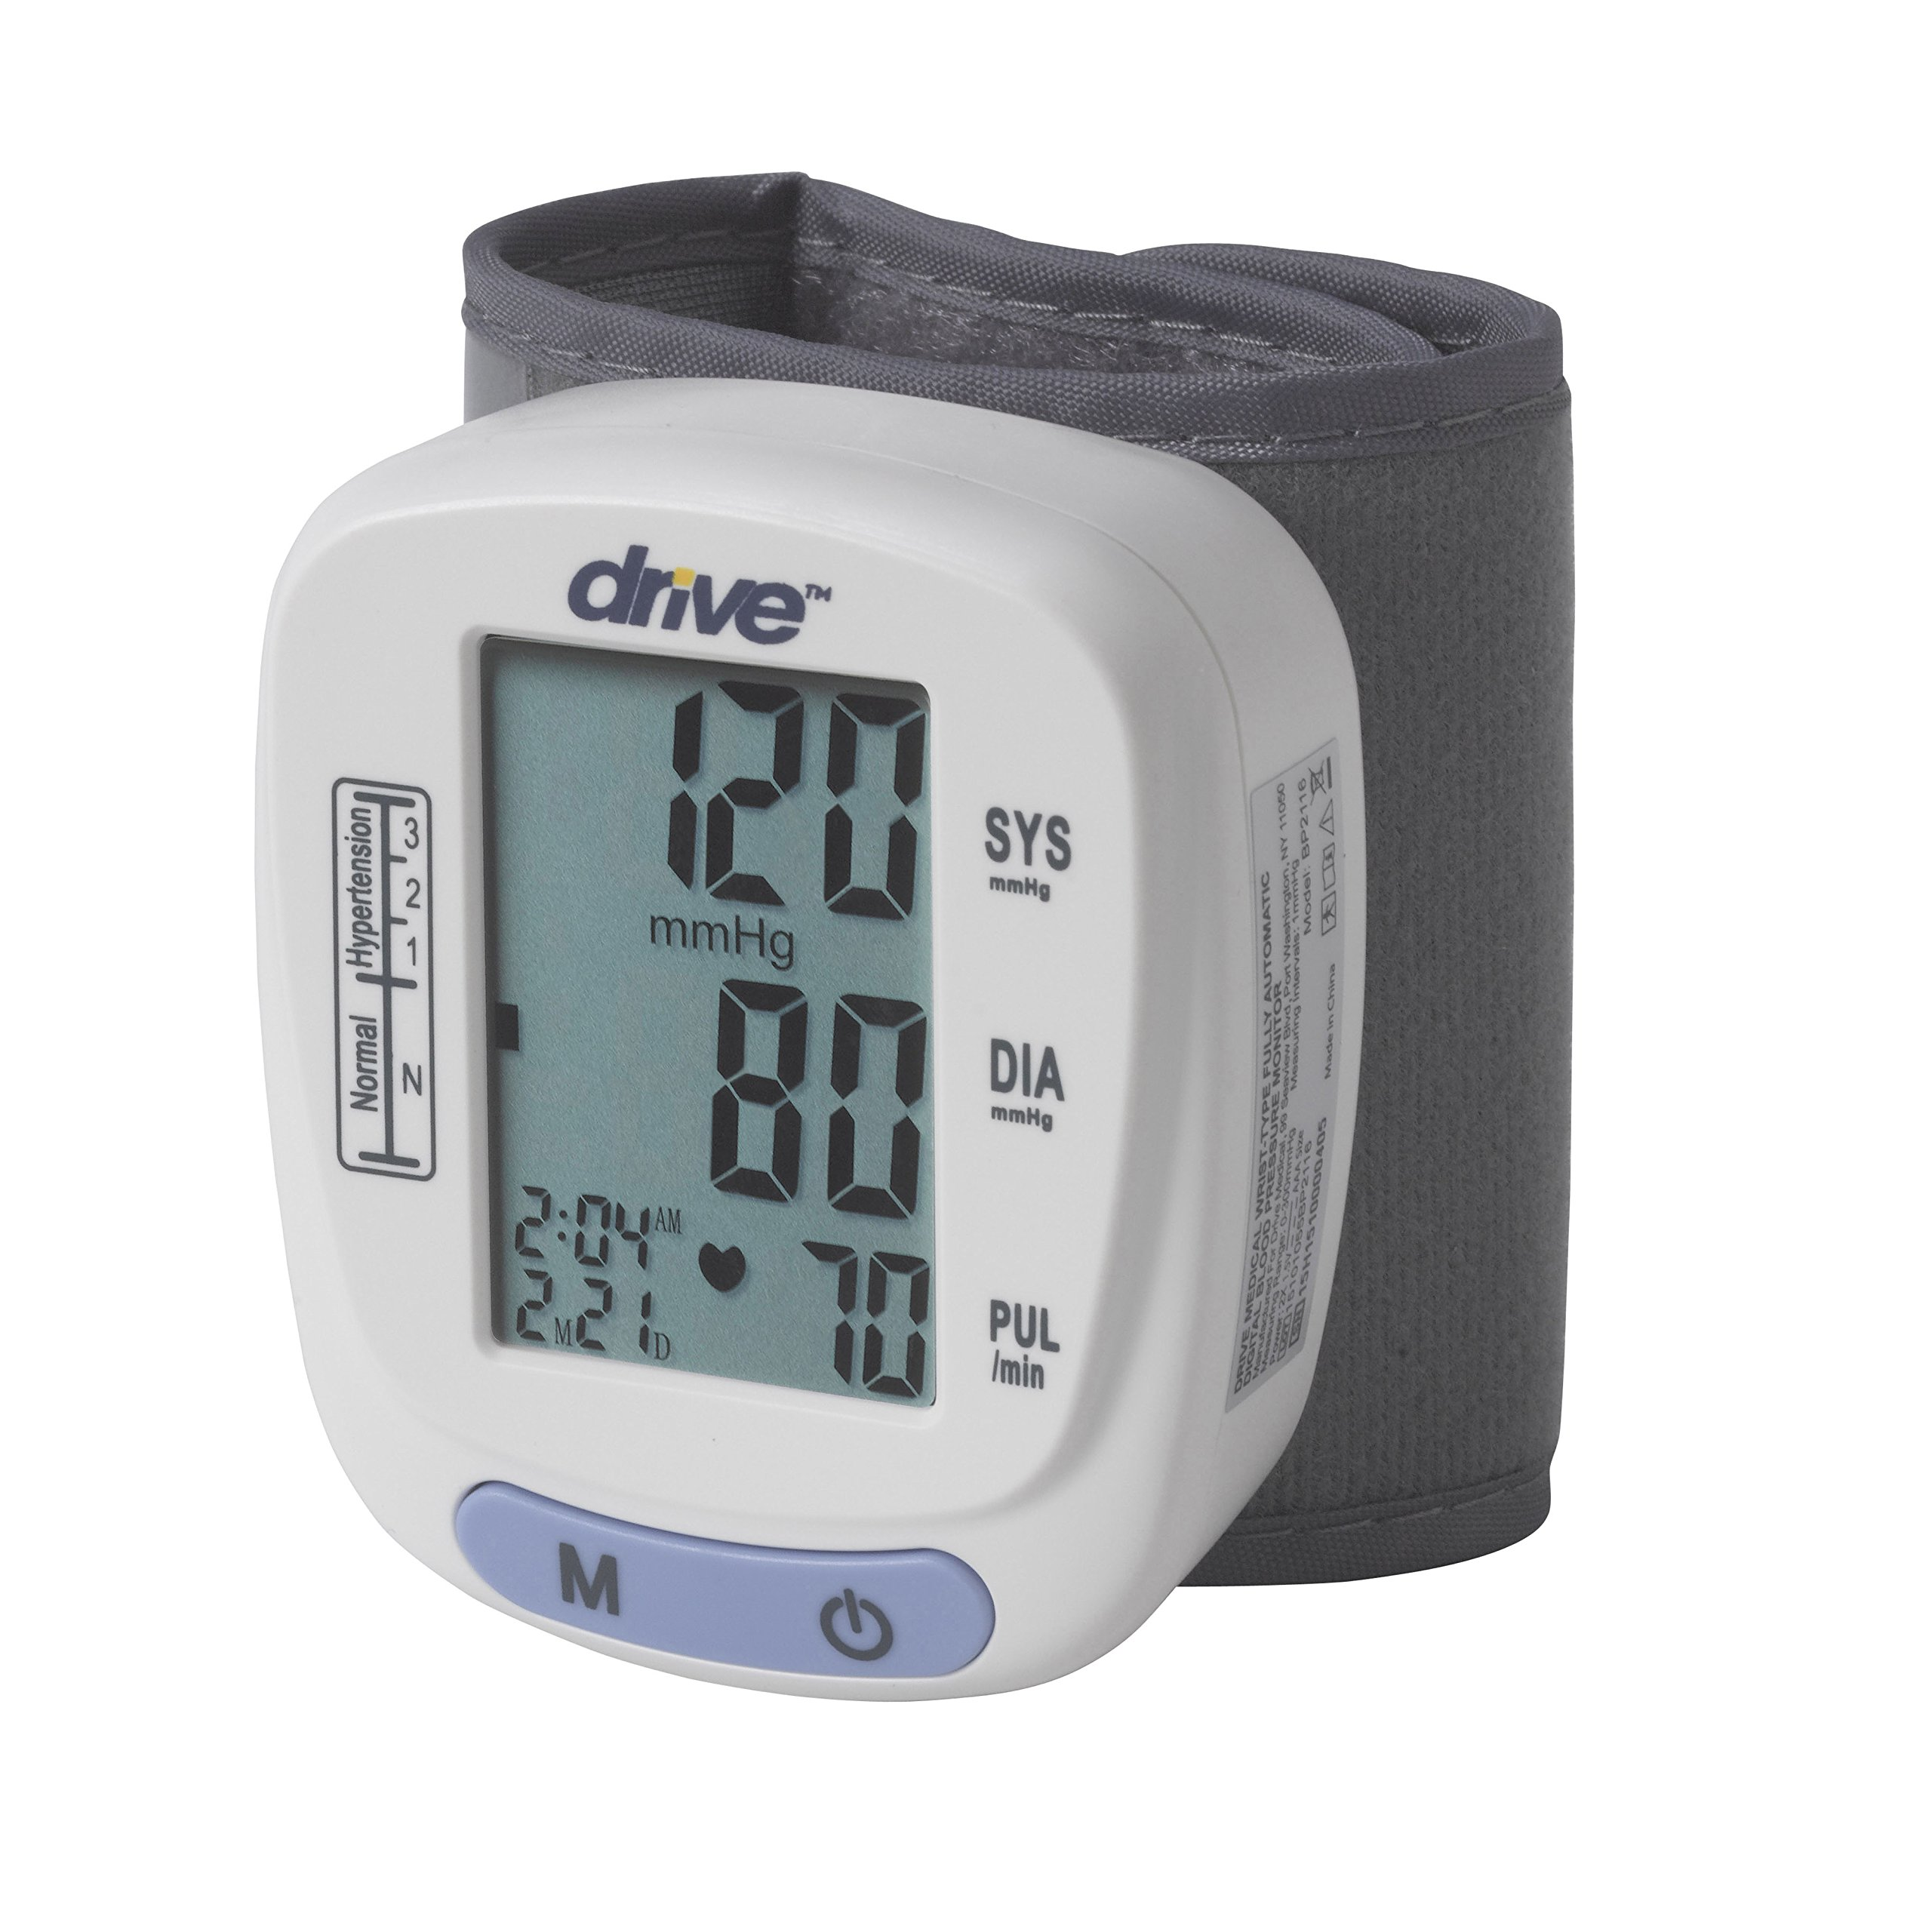 Drive Medical Automatic Blood Pressure Monitor/Wrist Model, White